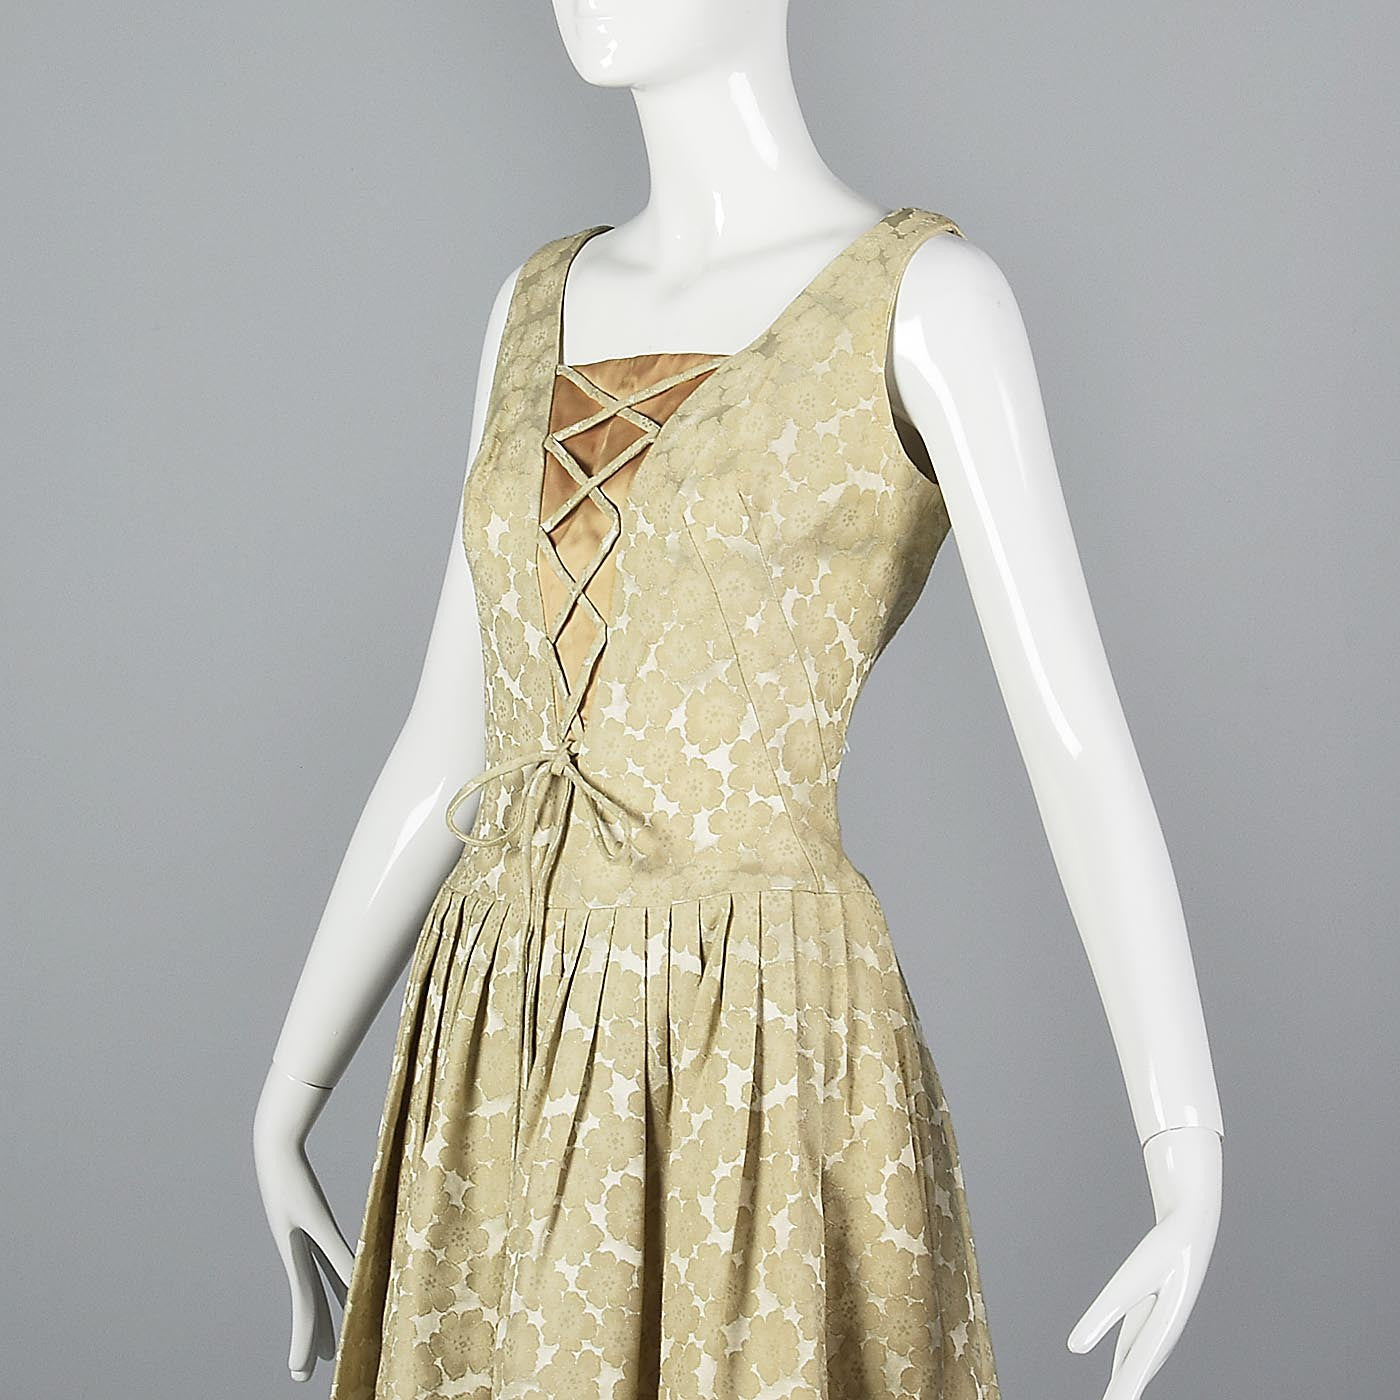 1950s Ivory Brocade Dress with Corset Illusion Front